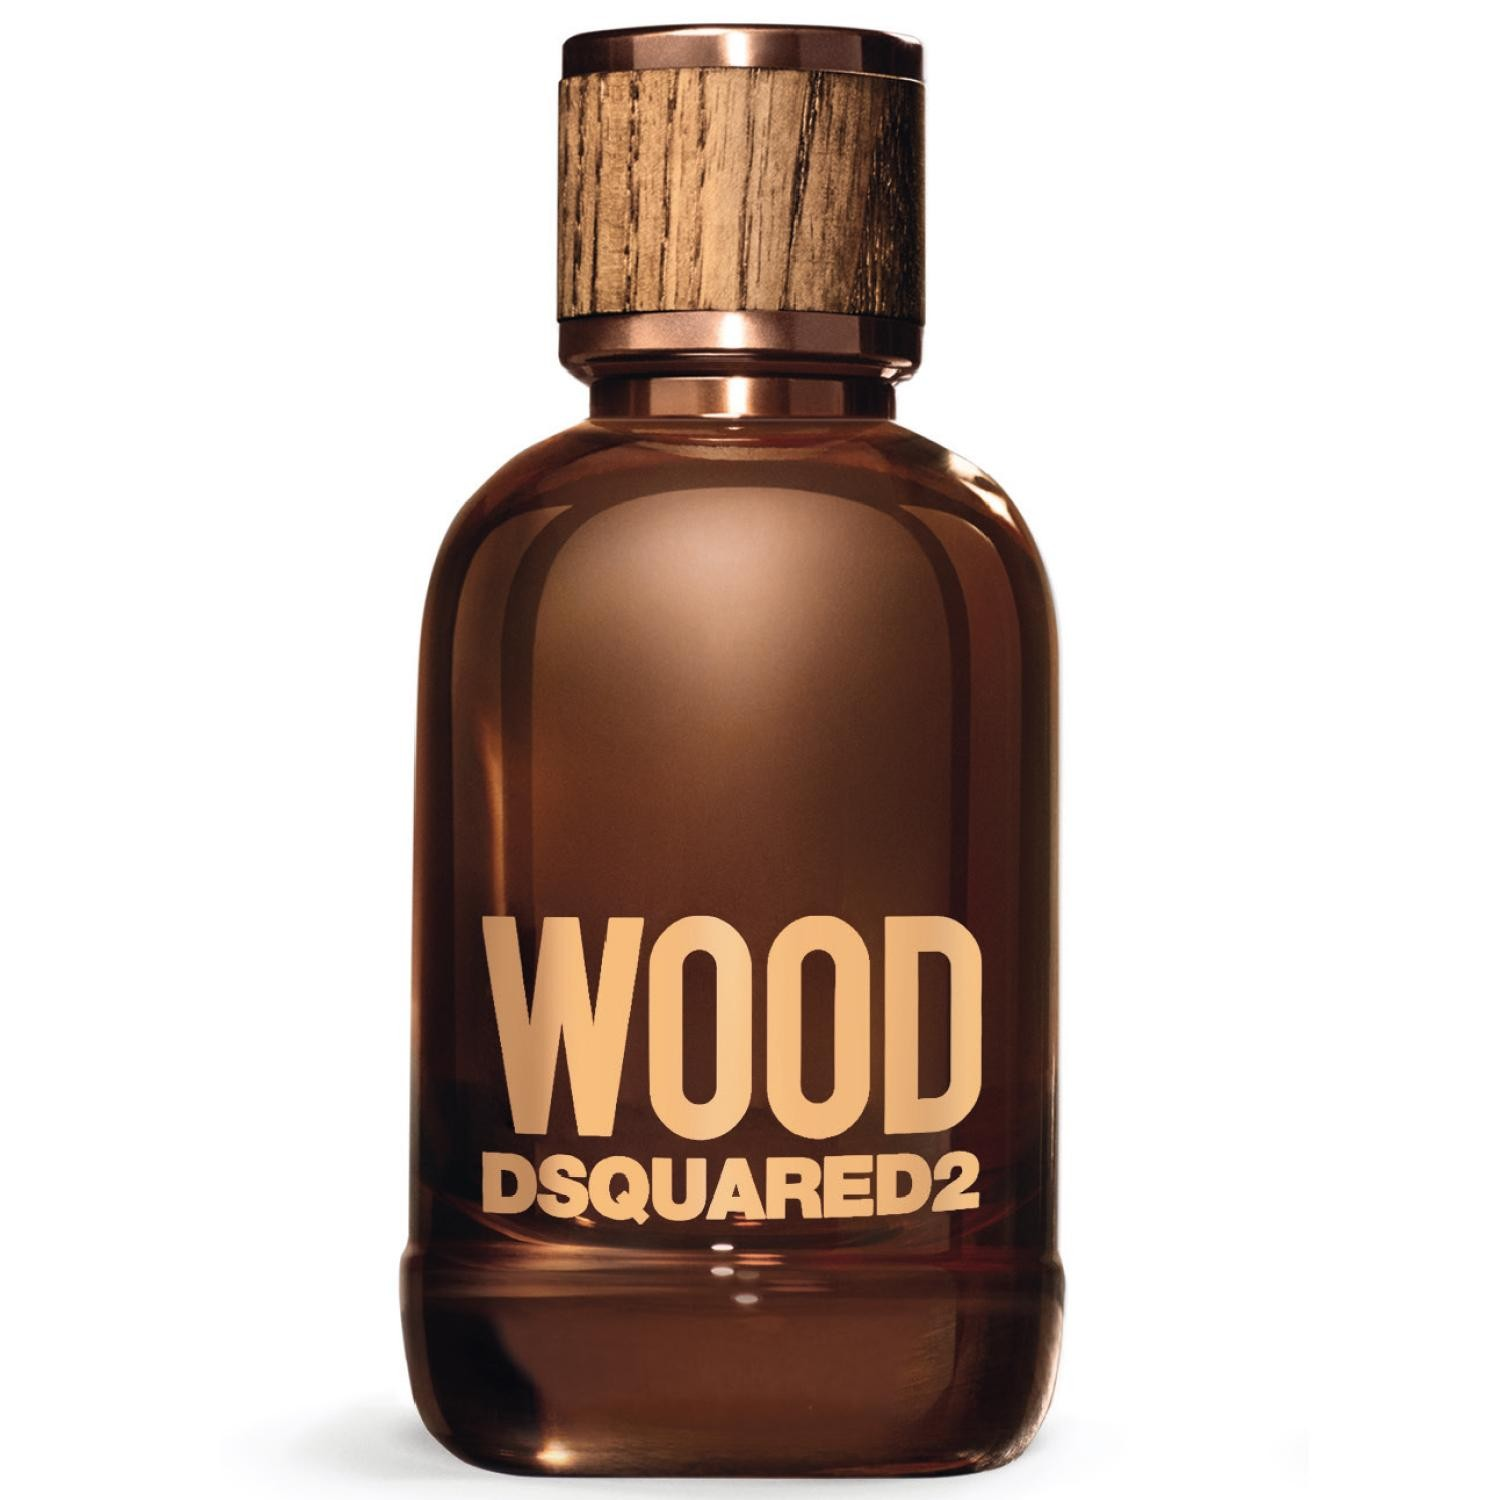 Dsquared2 Wood, 50ml